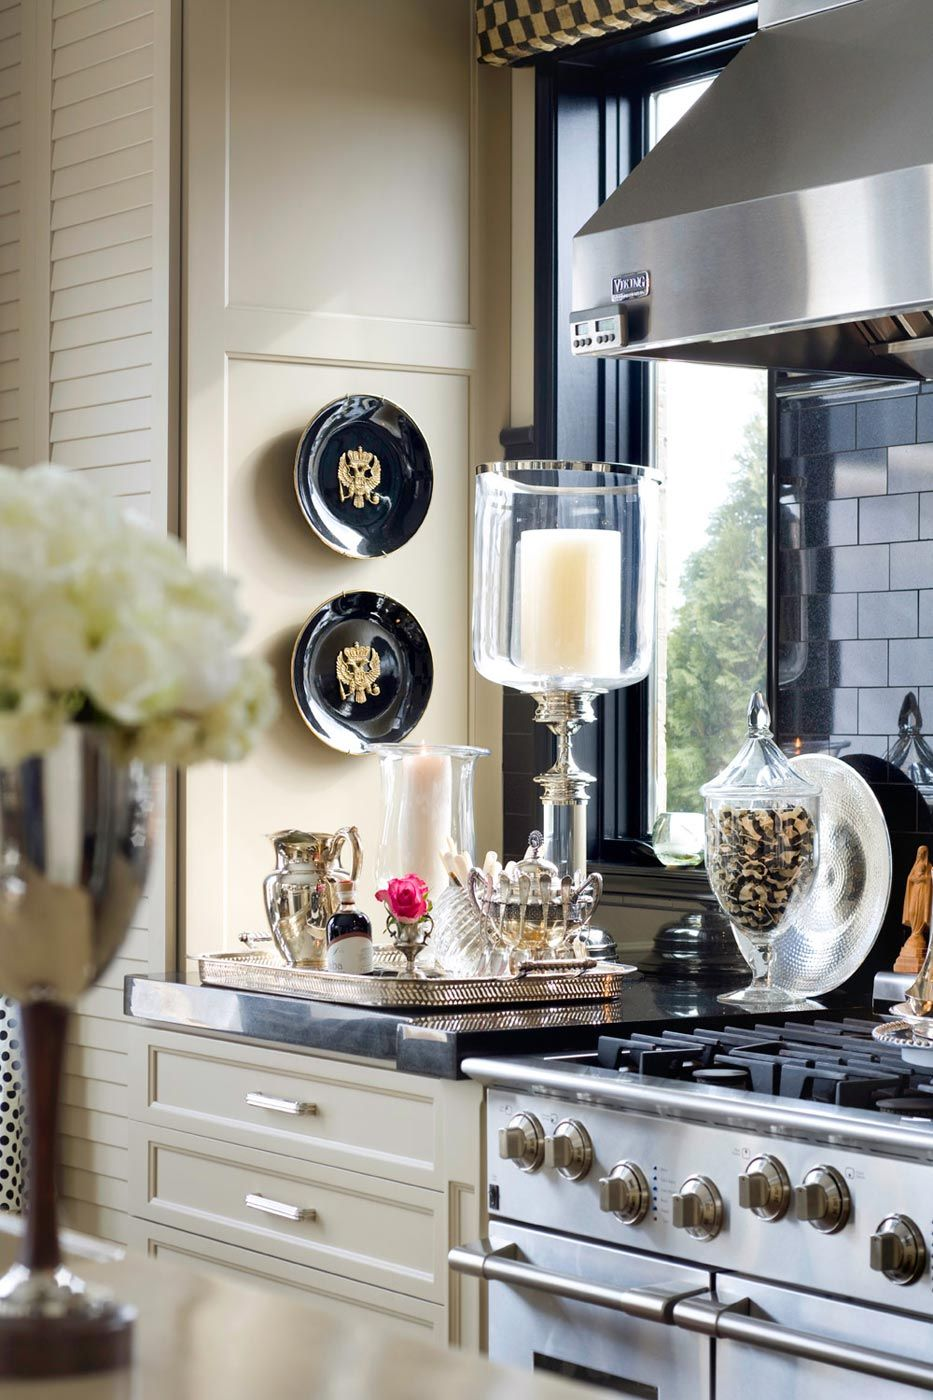 Pretty kitchen vignette + crushing on the silver tray & accessories ...